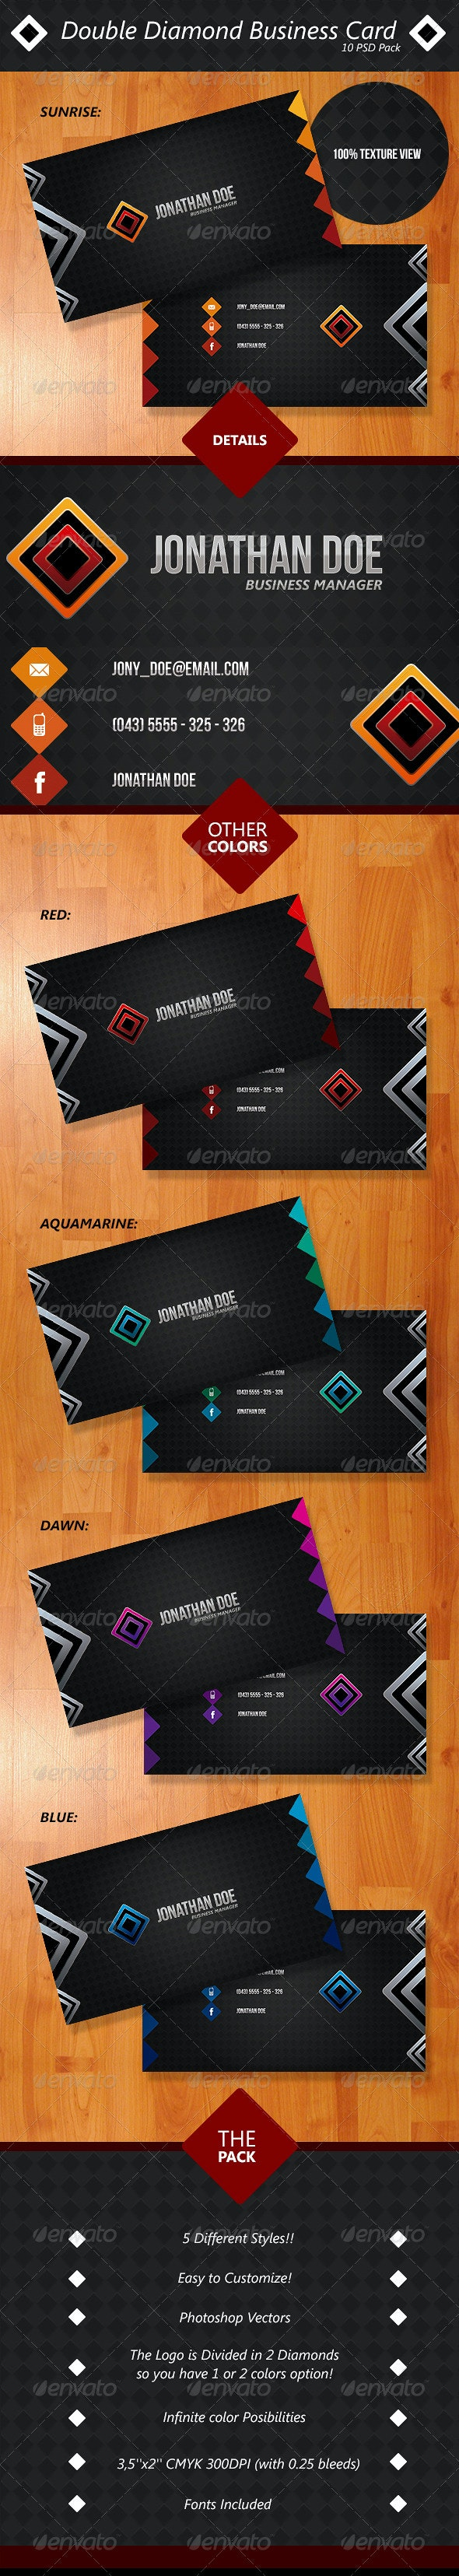 Double Diamond Business Card Pack - Creative Business Cards